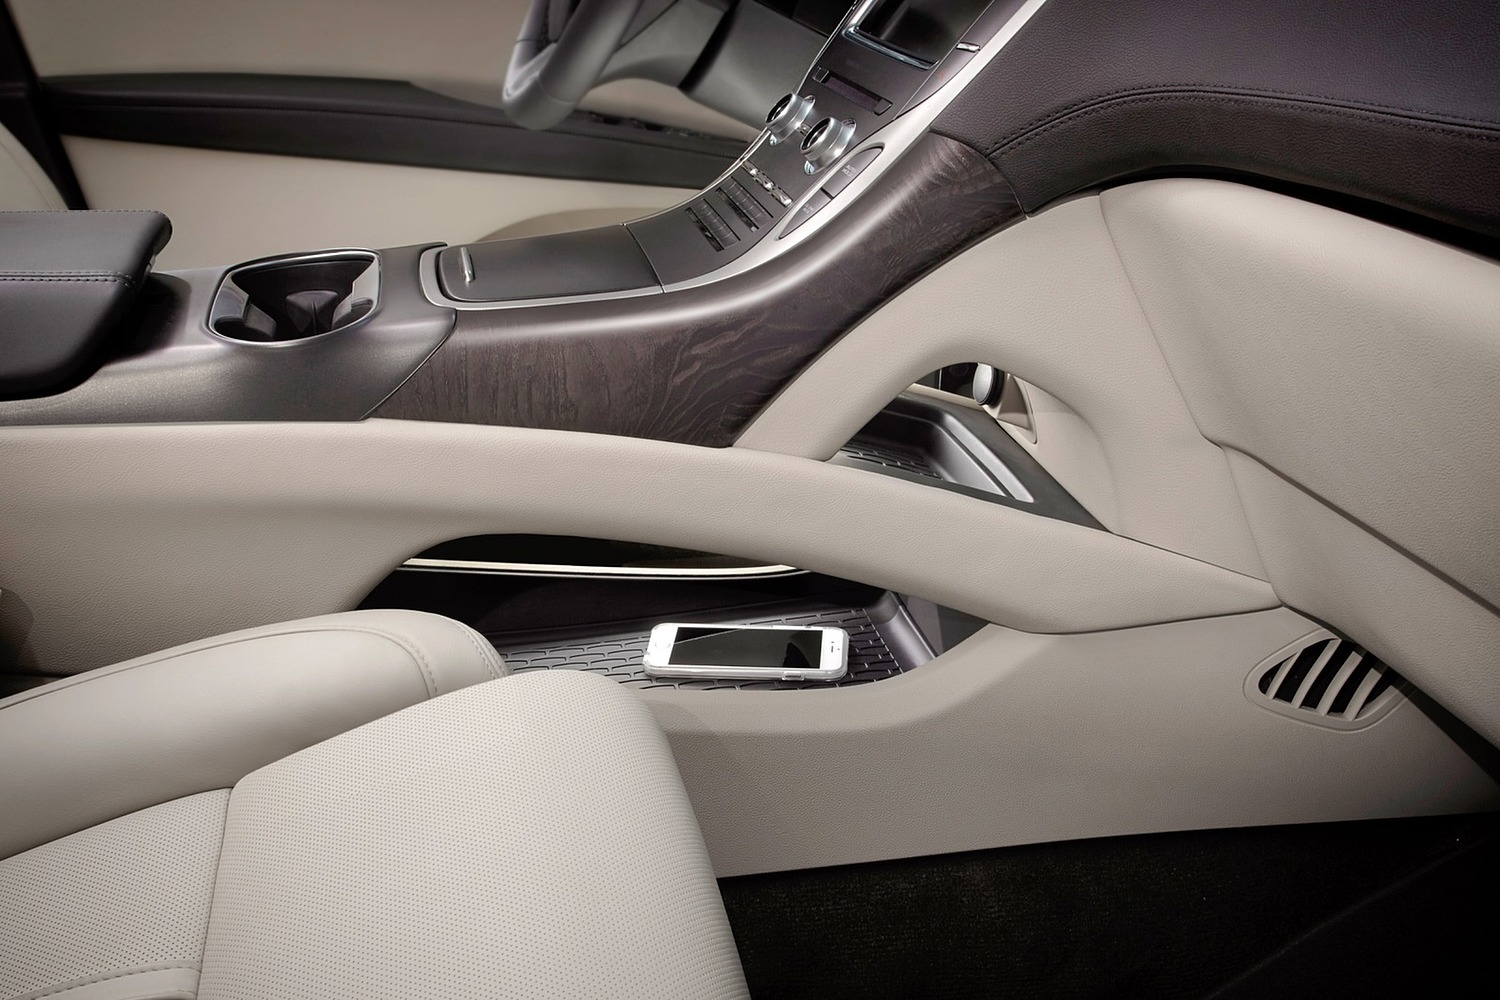 Lincoln MKX Reserve 4dr SUV Interior Detail Shown (2017 model year shown)